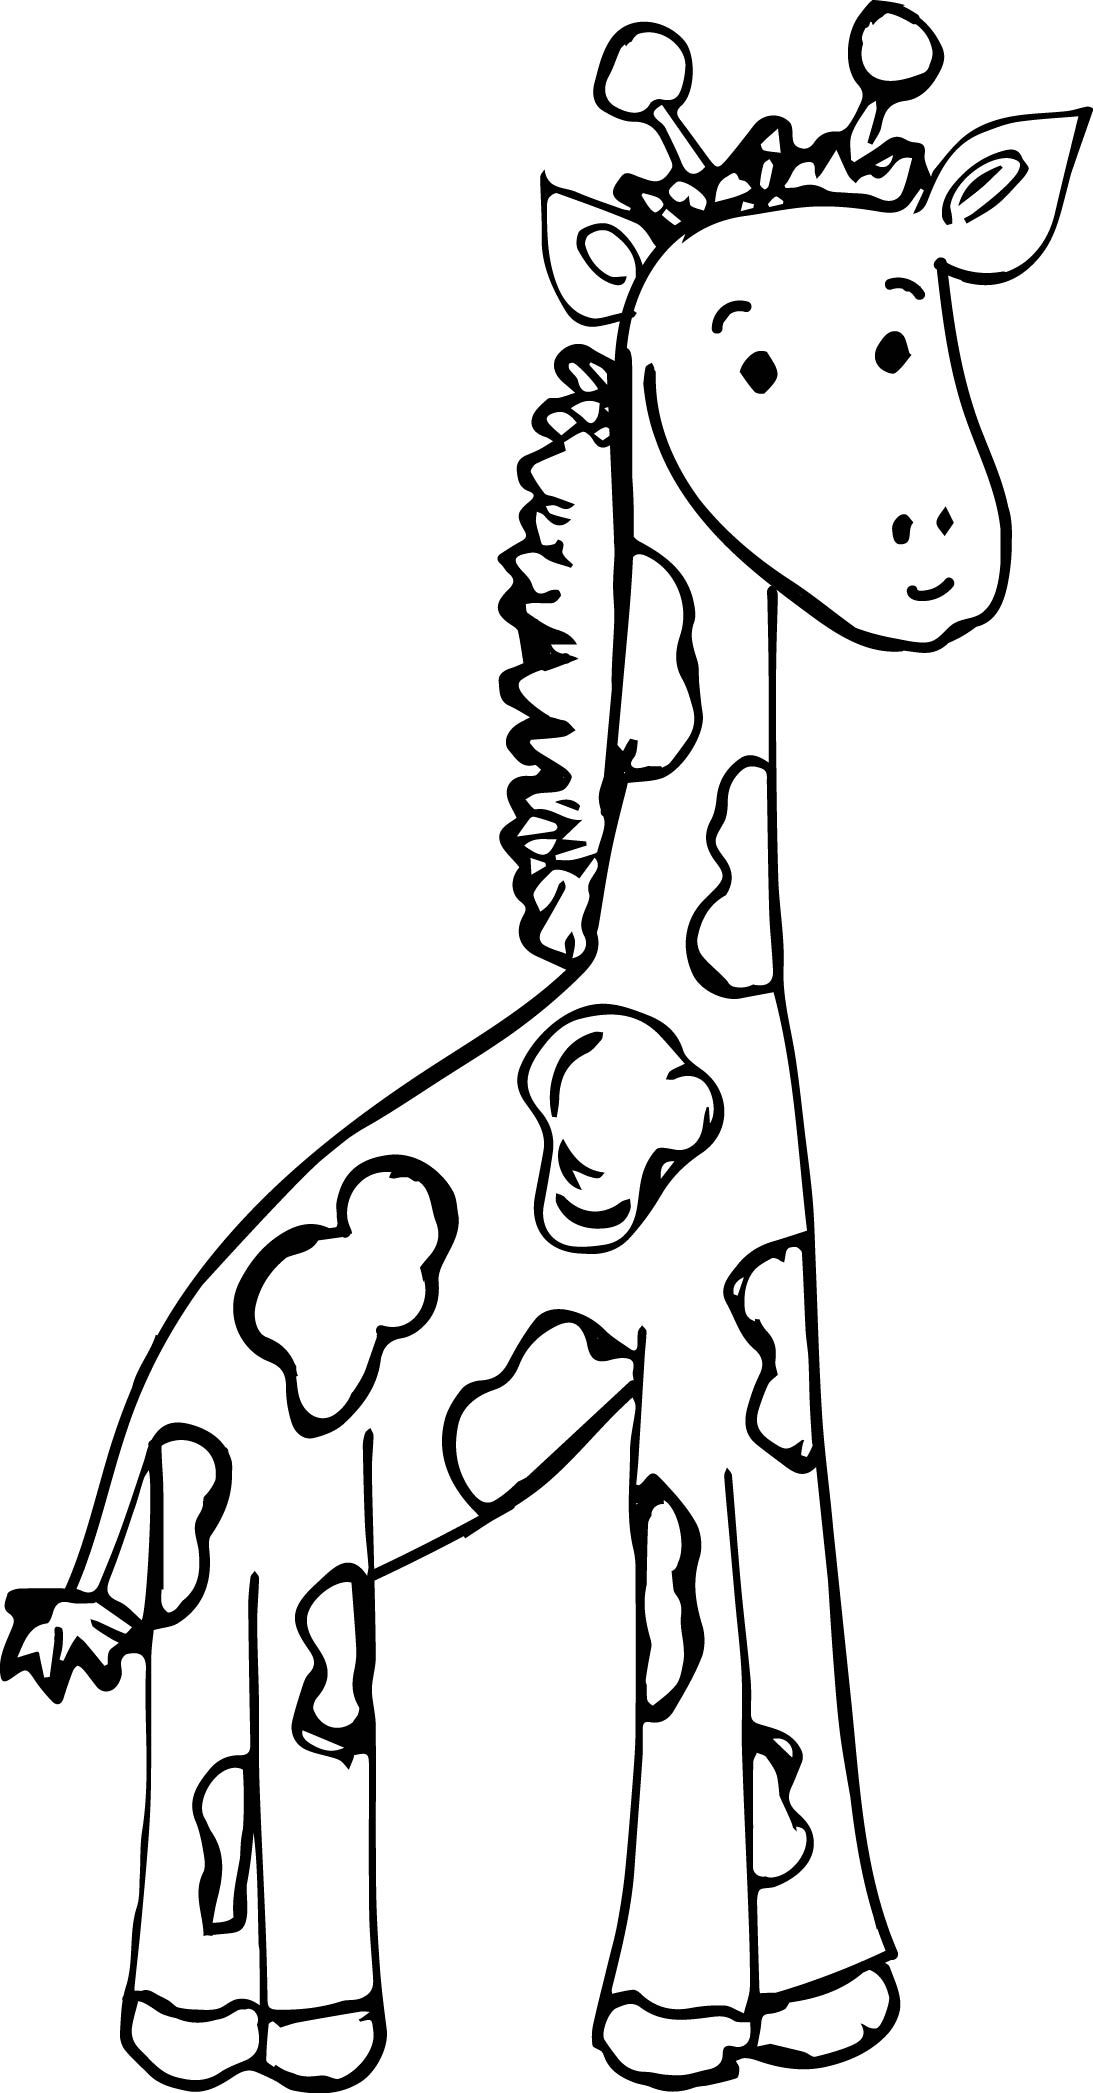 Cool Zoo Baby Giraffe Coloring Page Giraffe Coloring Pages